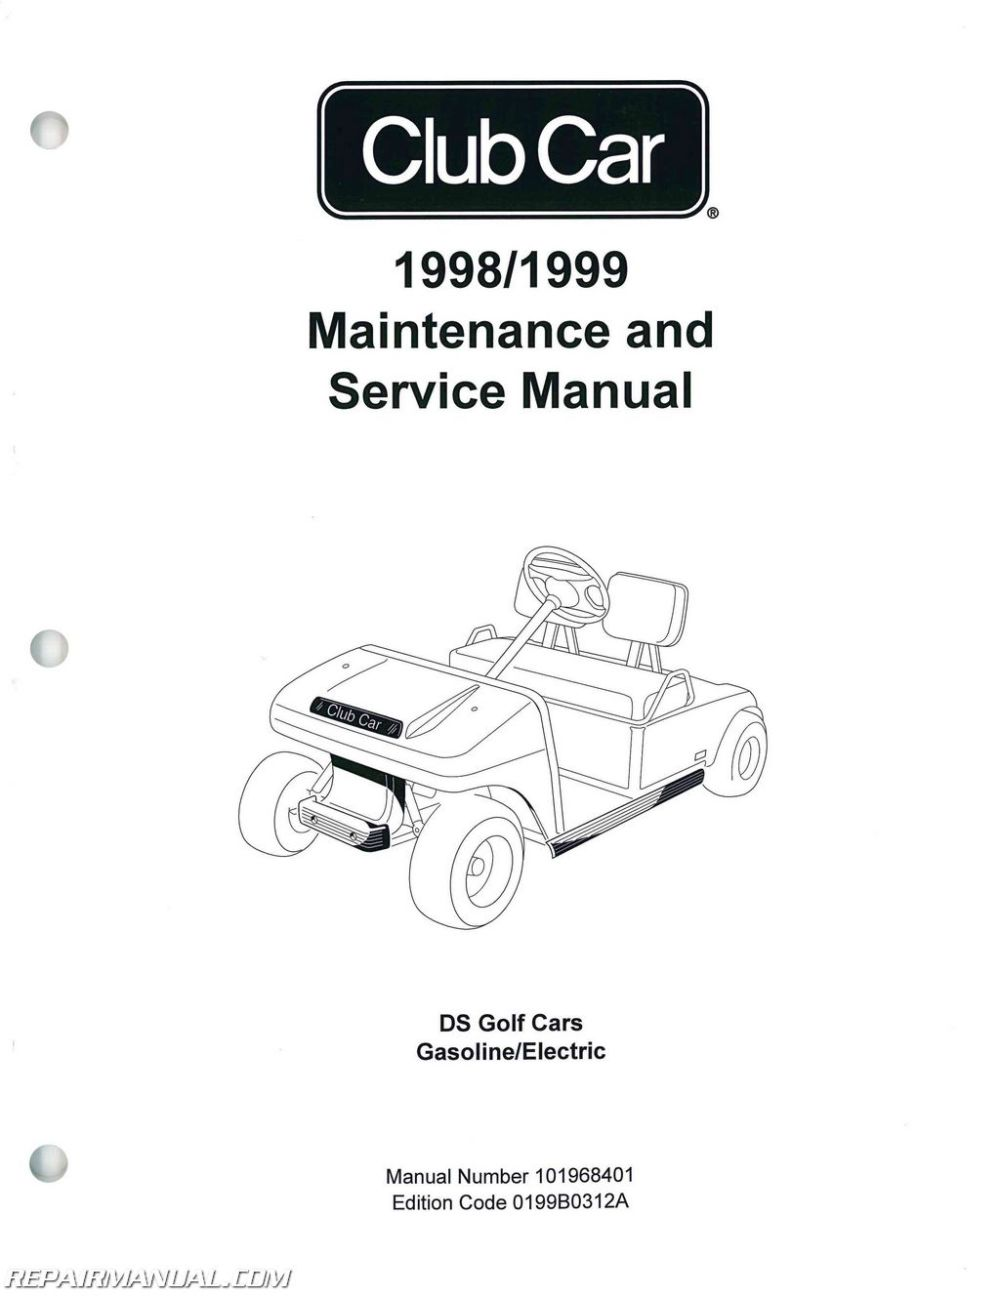 medium resolution of 1998 1999 club car ds golf car service manual club car throttle cable diagram club car steering column diagram